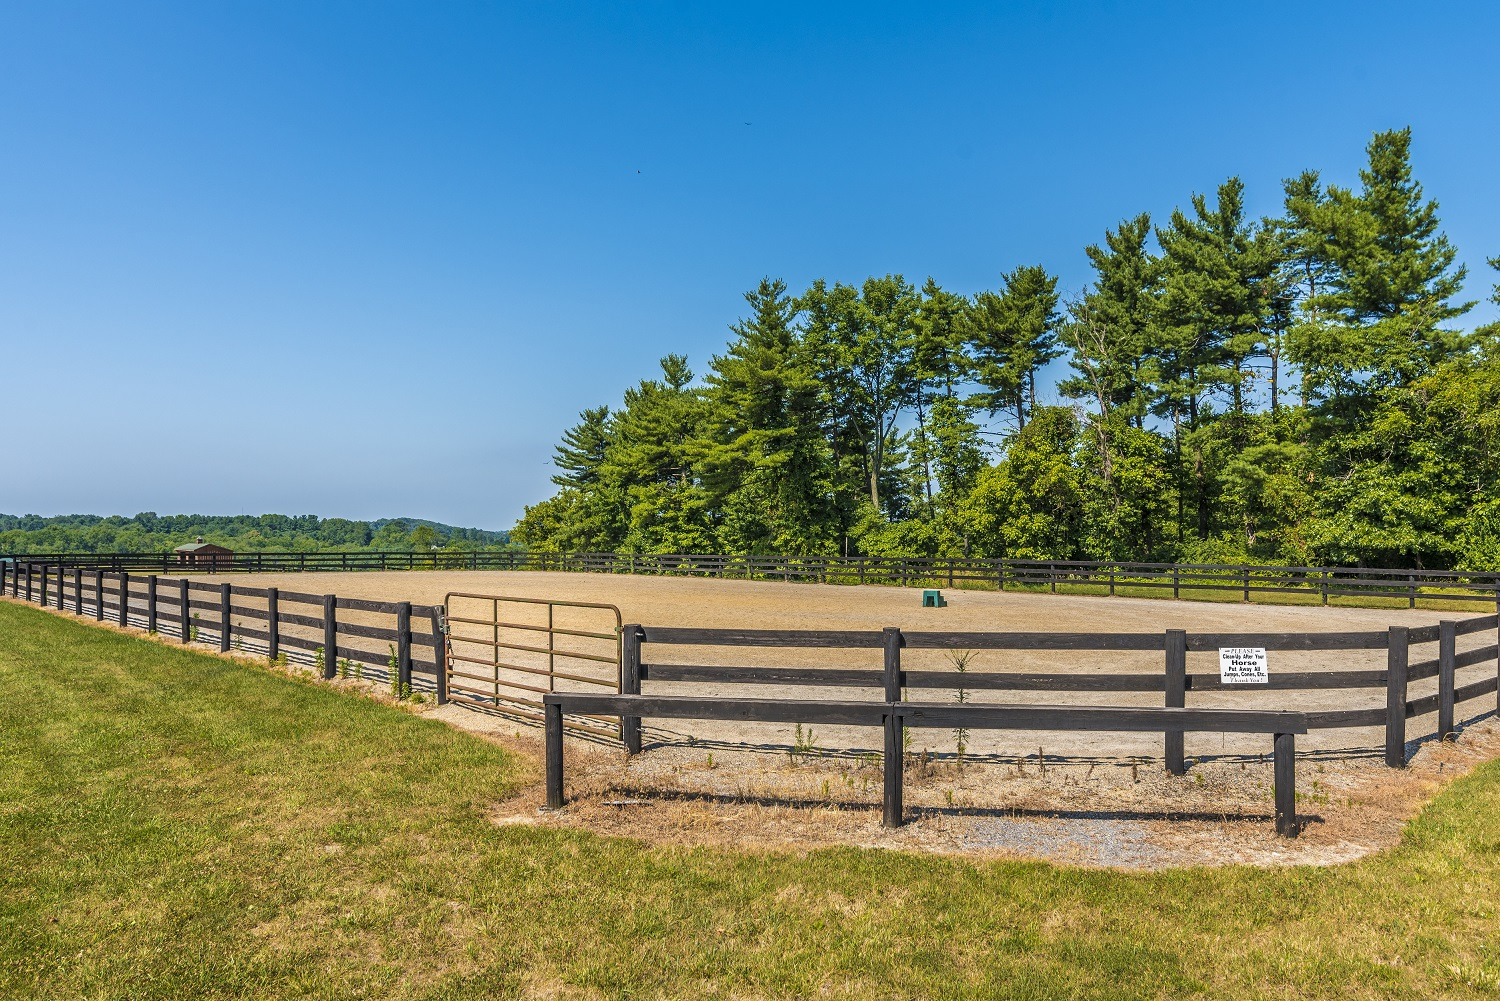 100 x 200 foot outdoor arena (jumps and cavallettis are AVAILABLE for use)